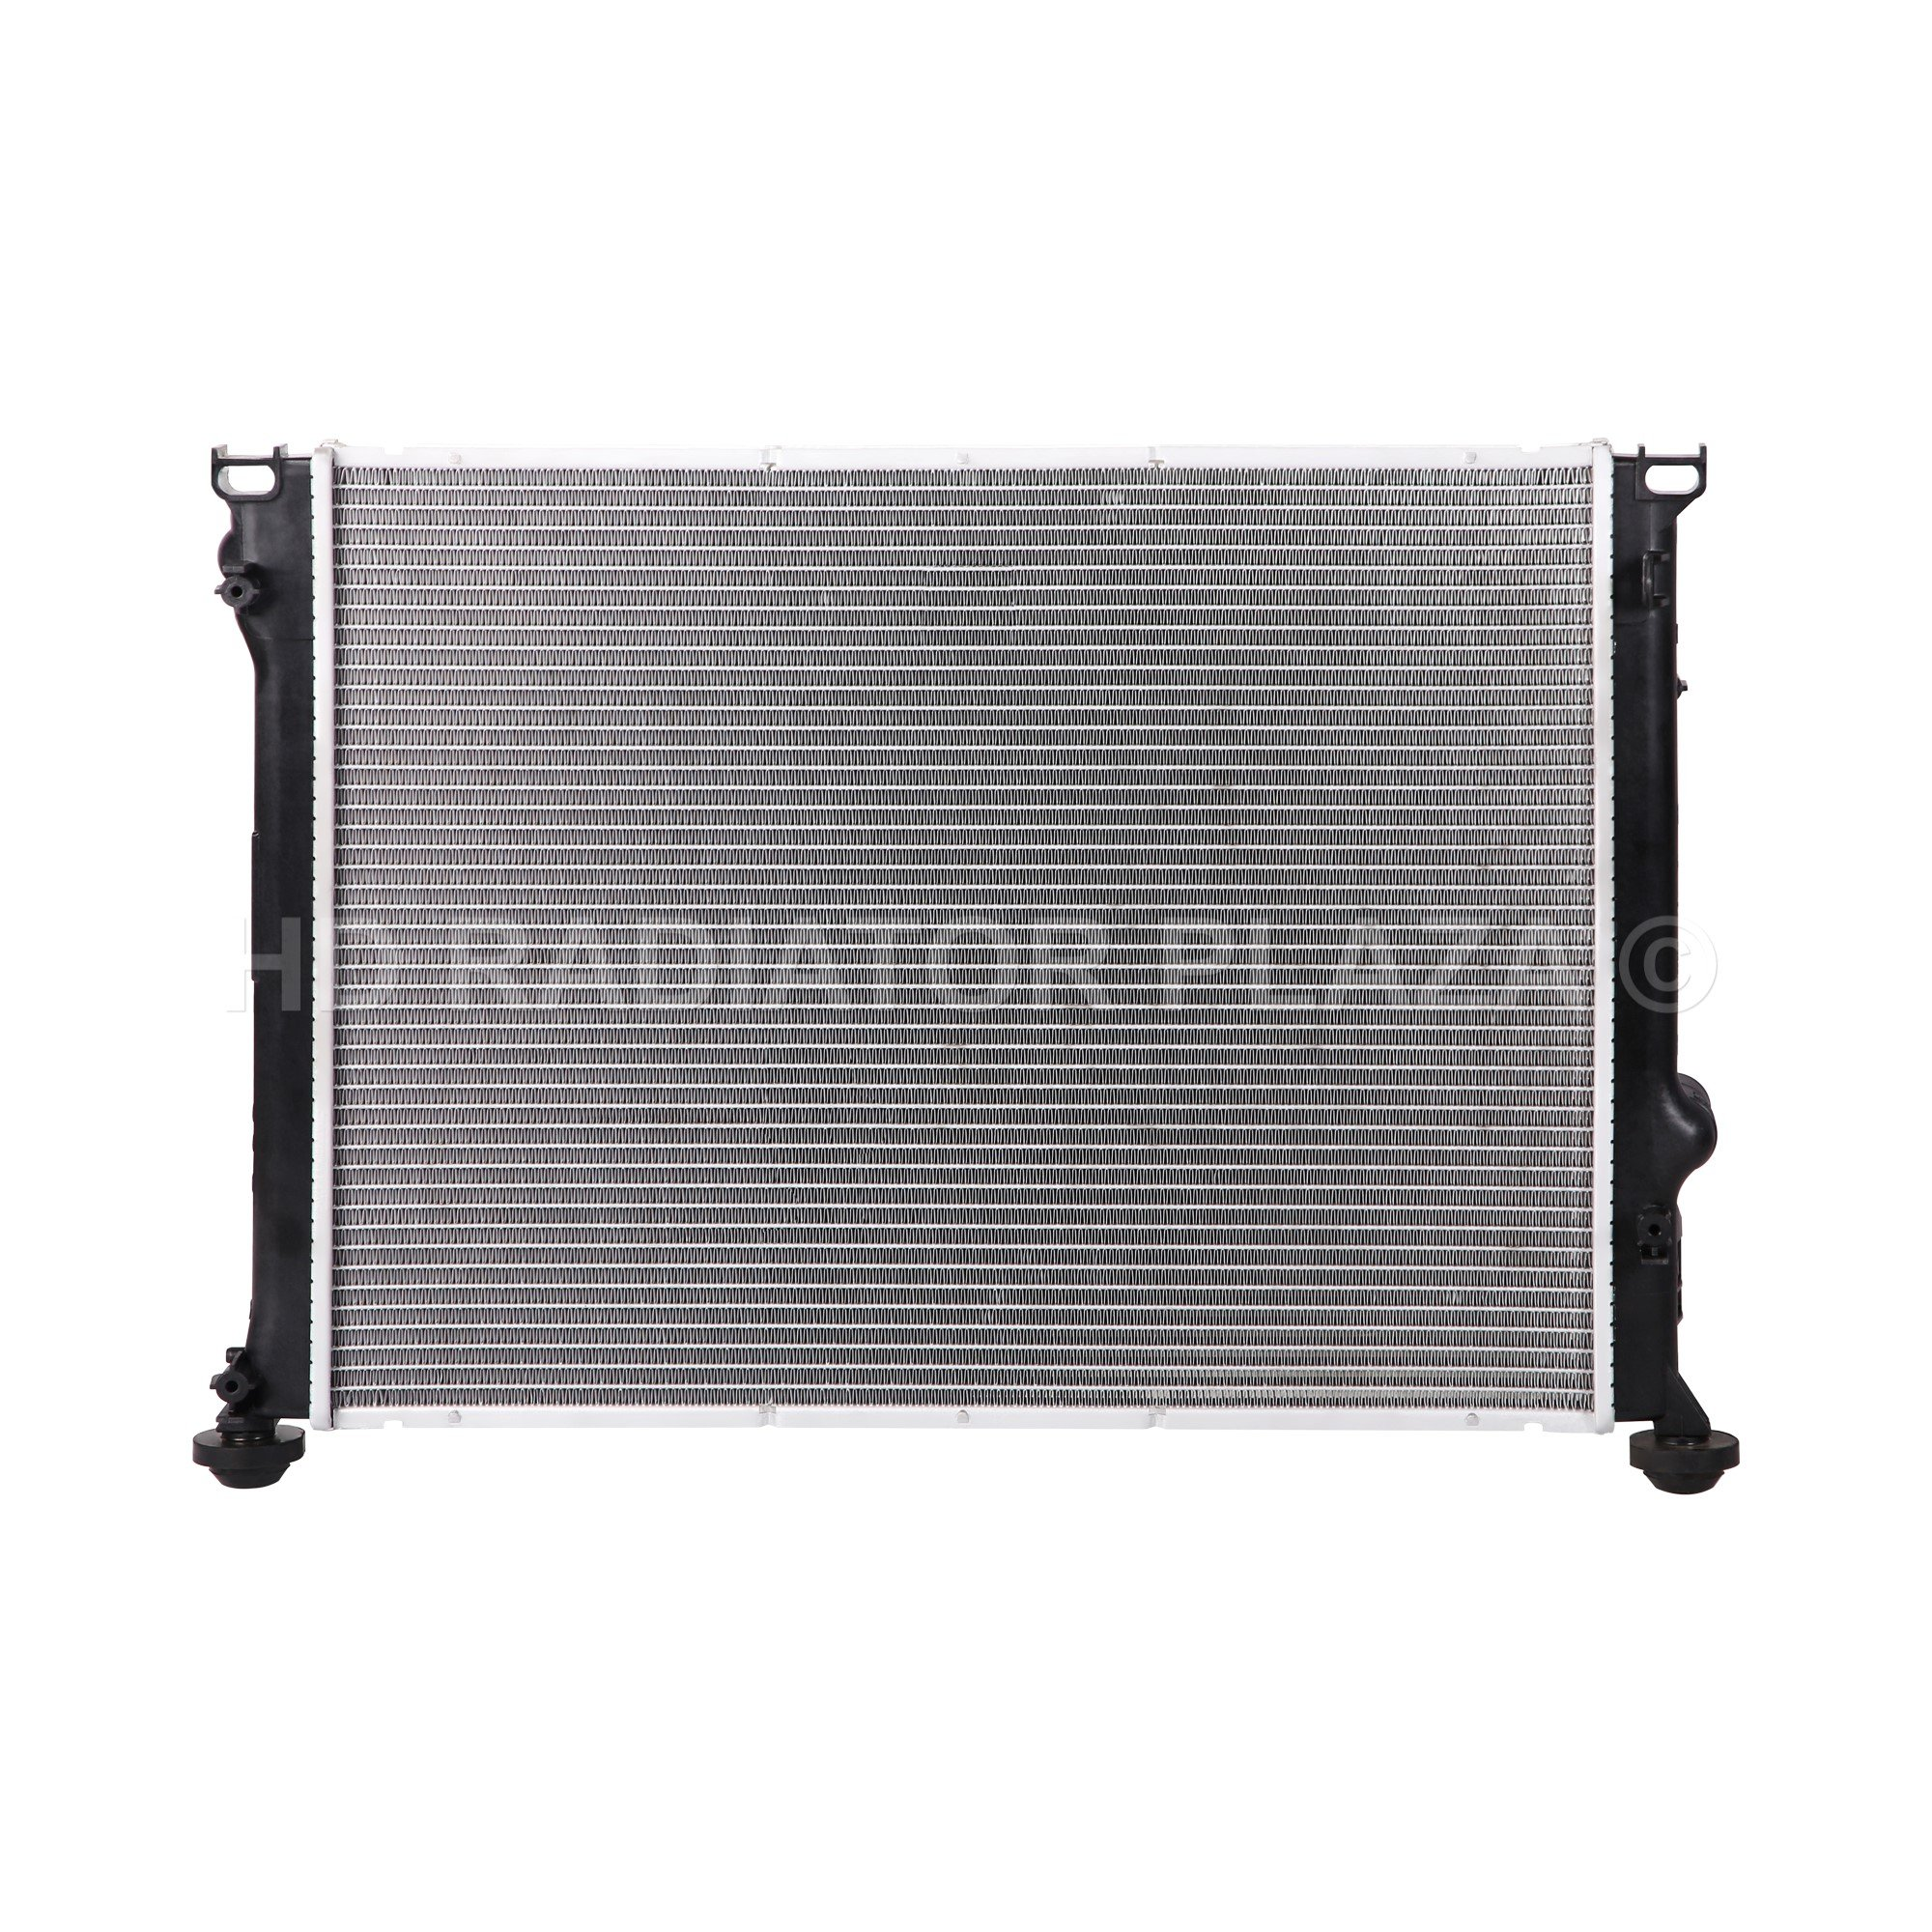 Radiator for 09-19 Chrysler 300, Dodge Charger / Challenger